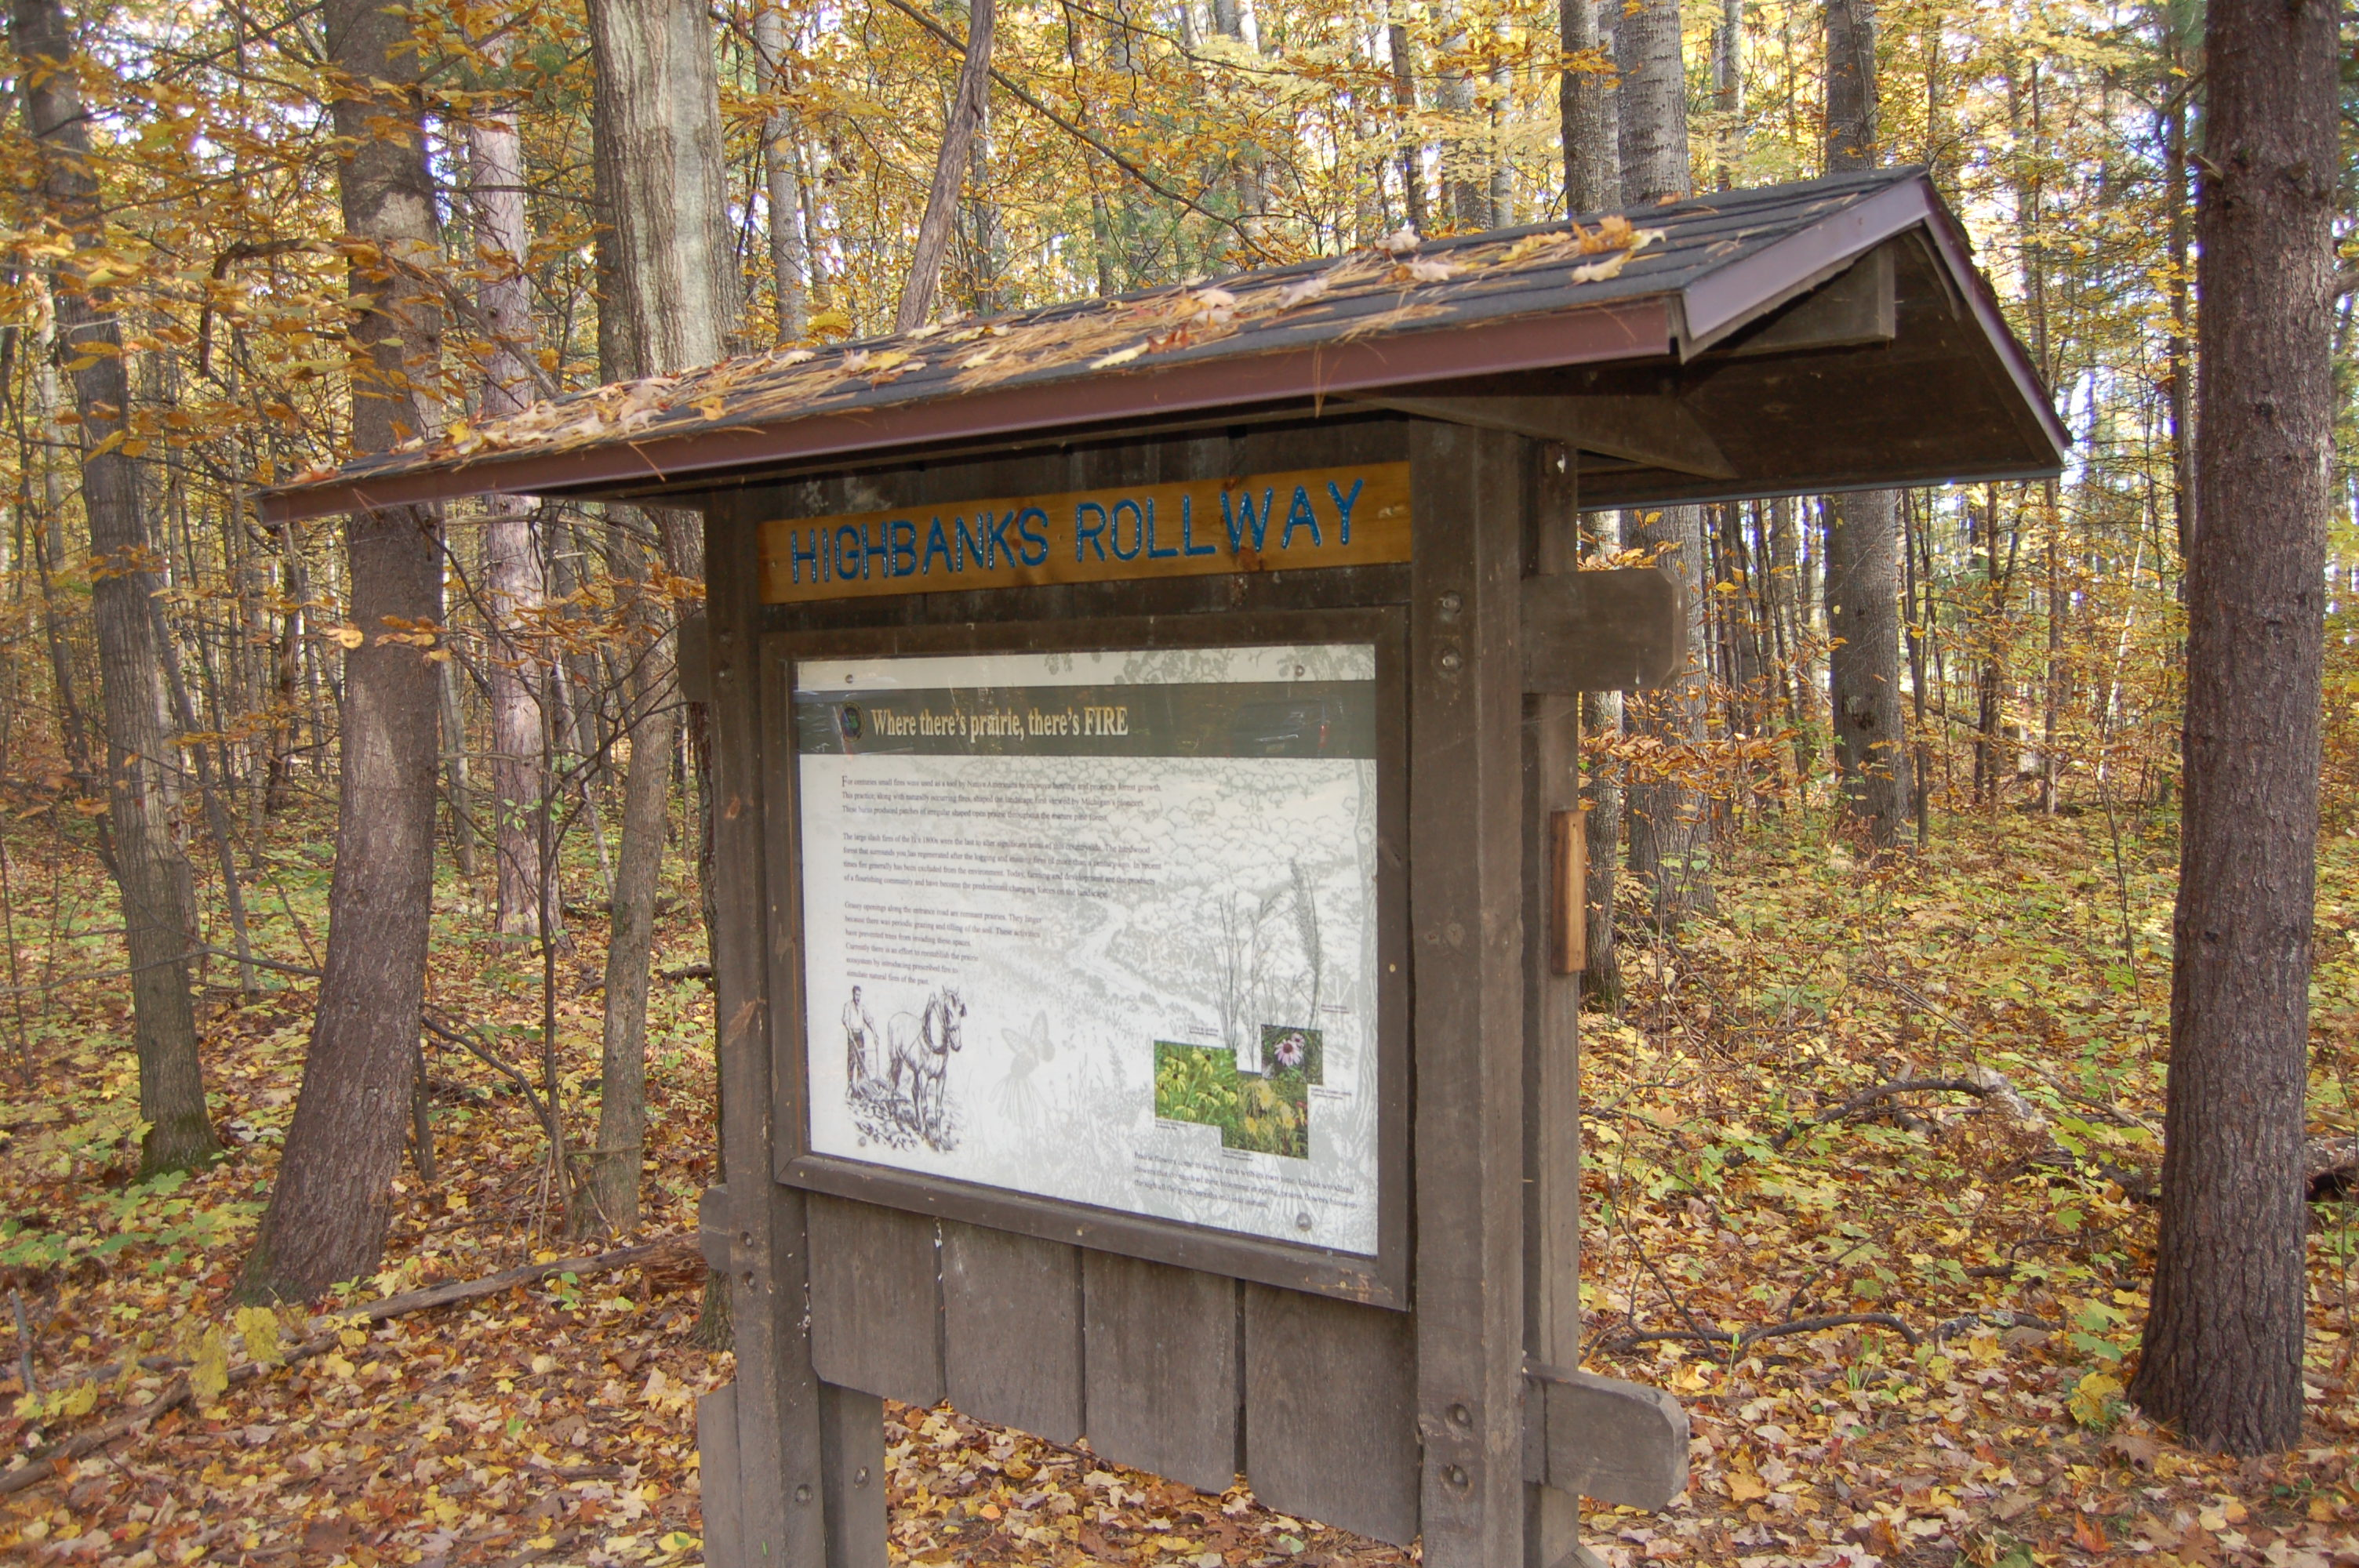 Highbank Rollway Sign Manistee River